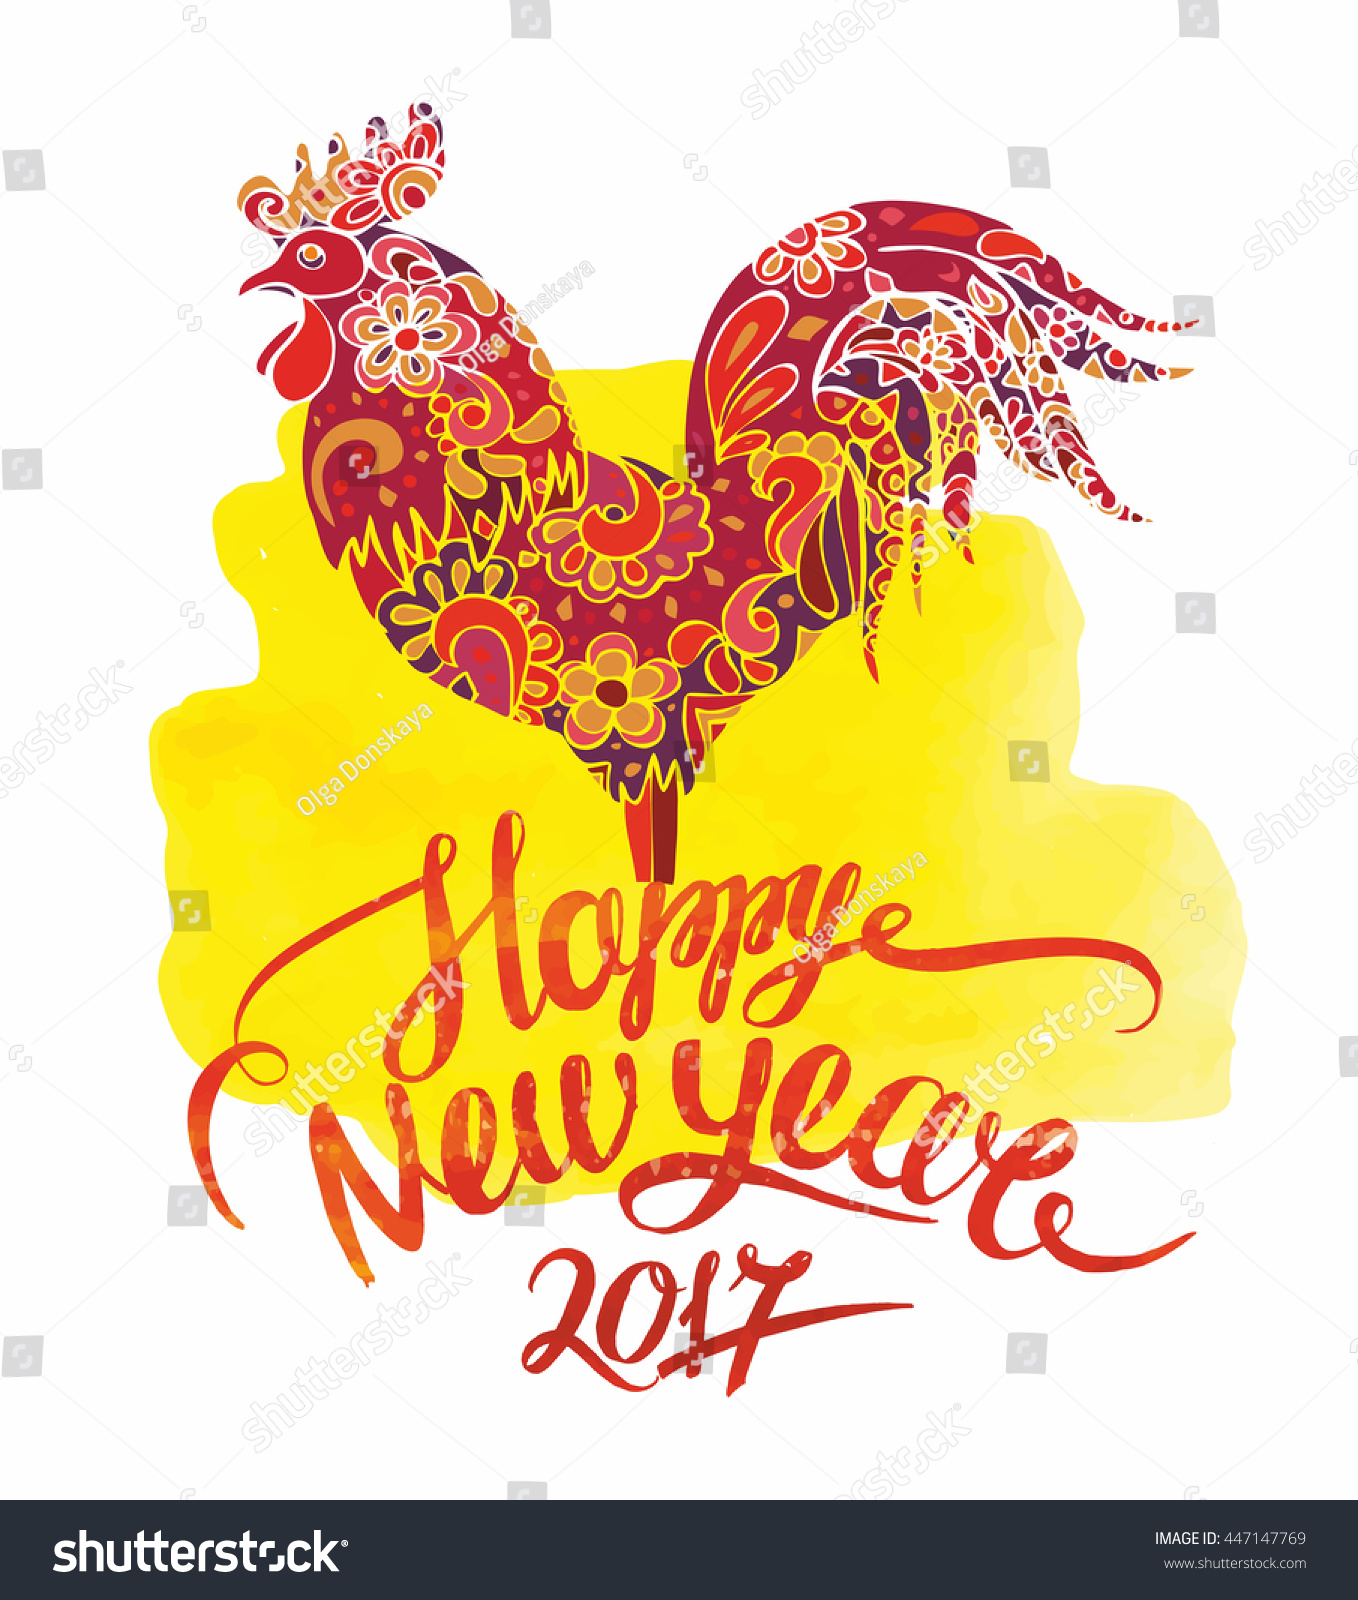 Happy new year 2017 greeting card stock vector 447147769 happy new year 2017 greeting card with rooster symbol of chinese horoscope good for posters kristyandbryce Gallery